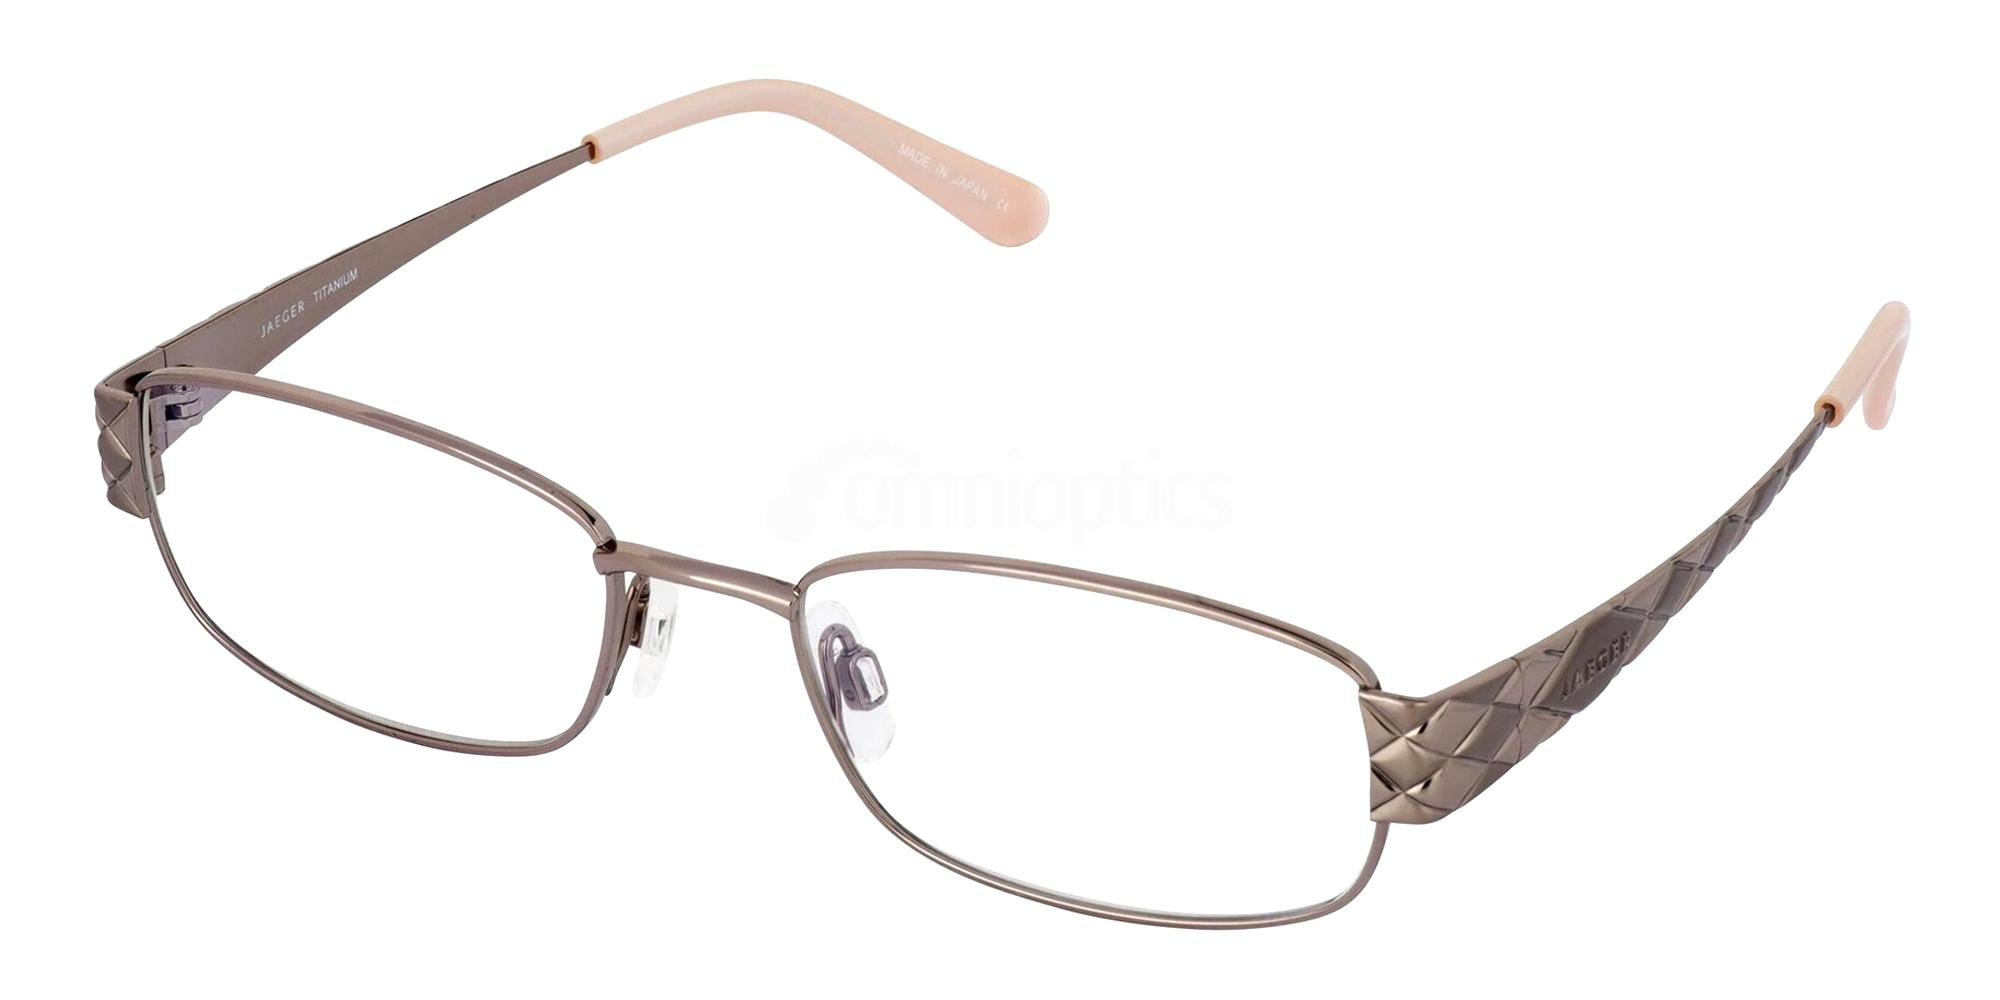 C.71 279 Glasses, Jaeger Pure Titanium